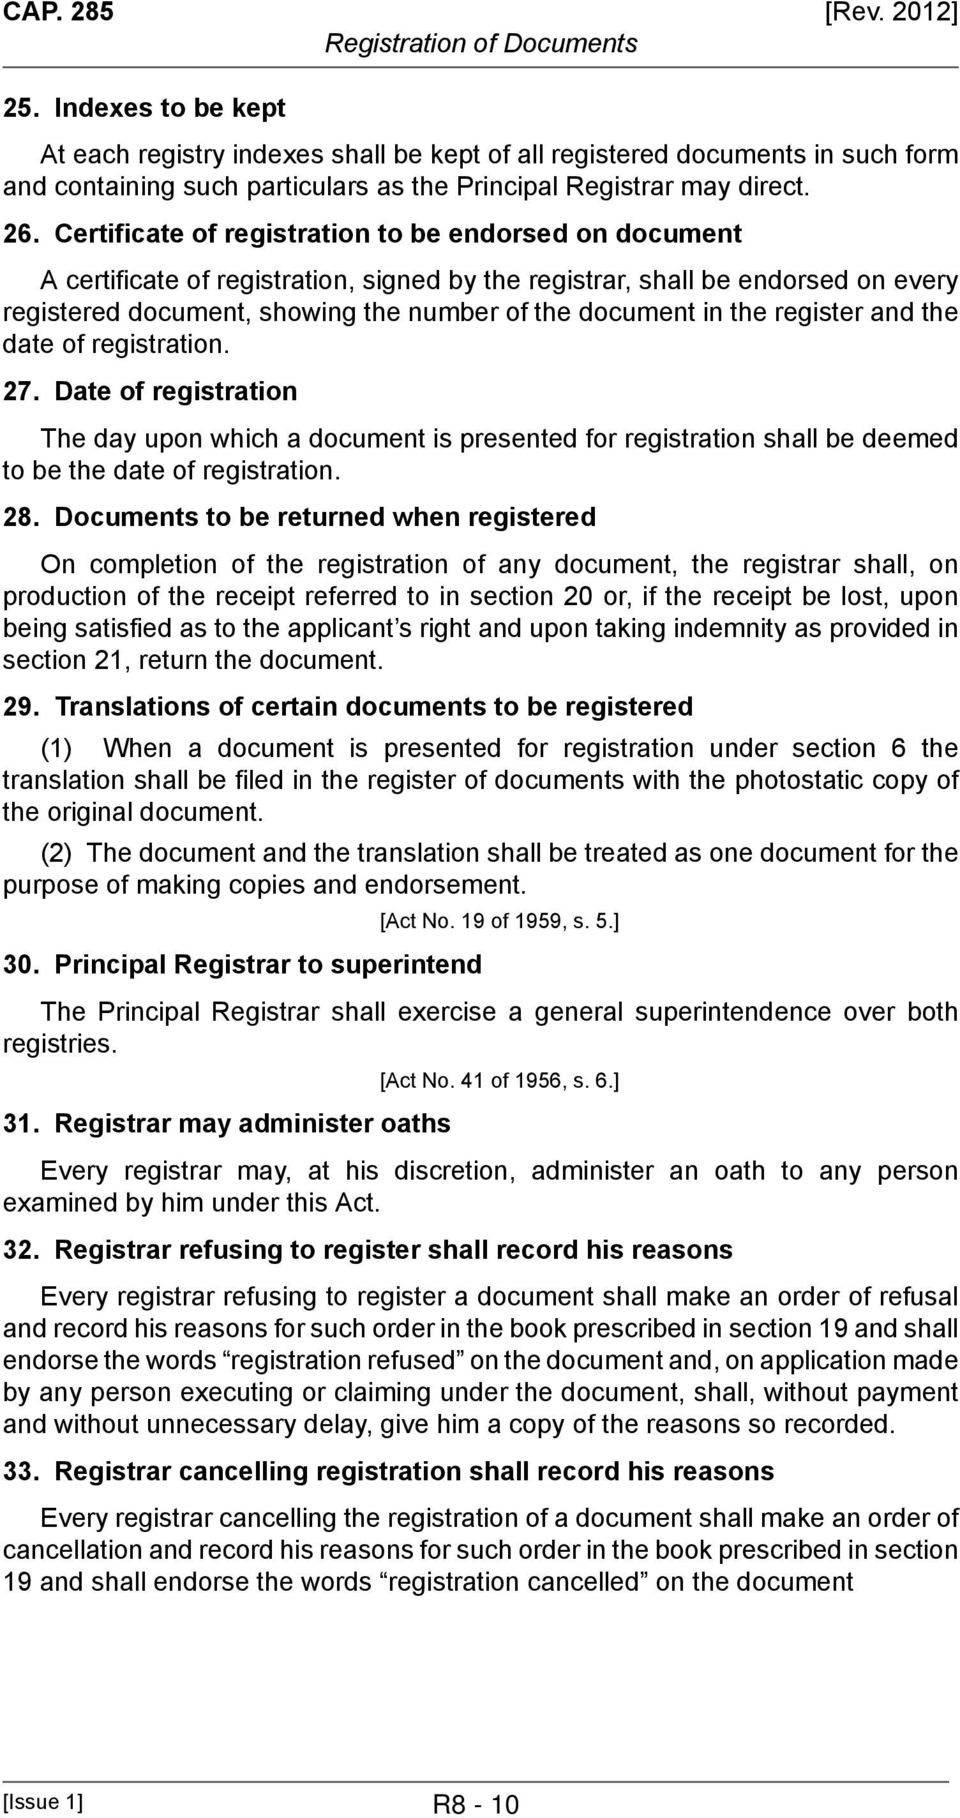 the register and the date of registration. 27. Date of registration The day upon which a document is presented for registration shall be deemed to be the date of registration. 28.